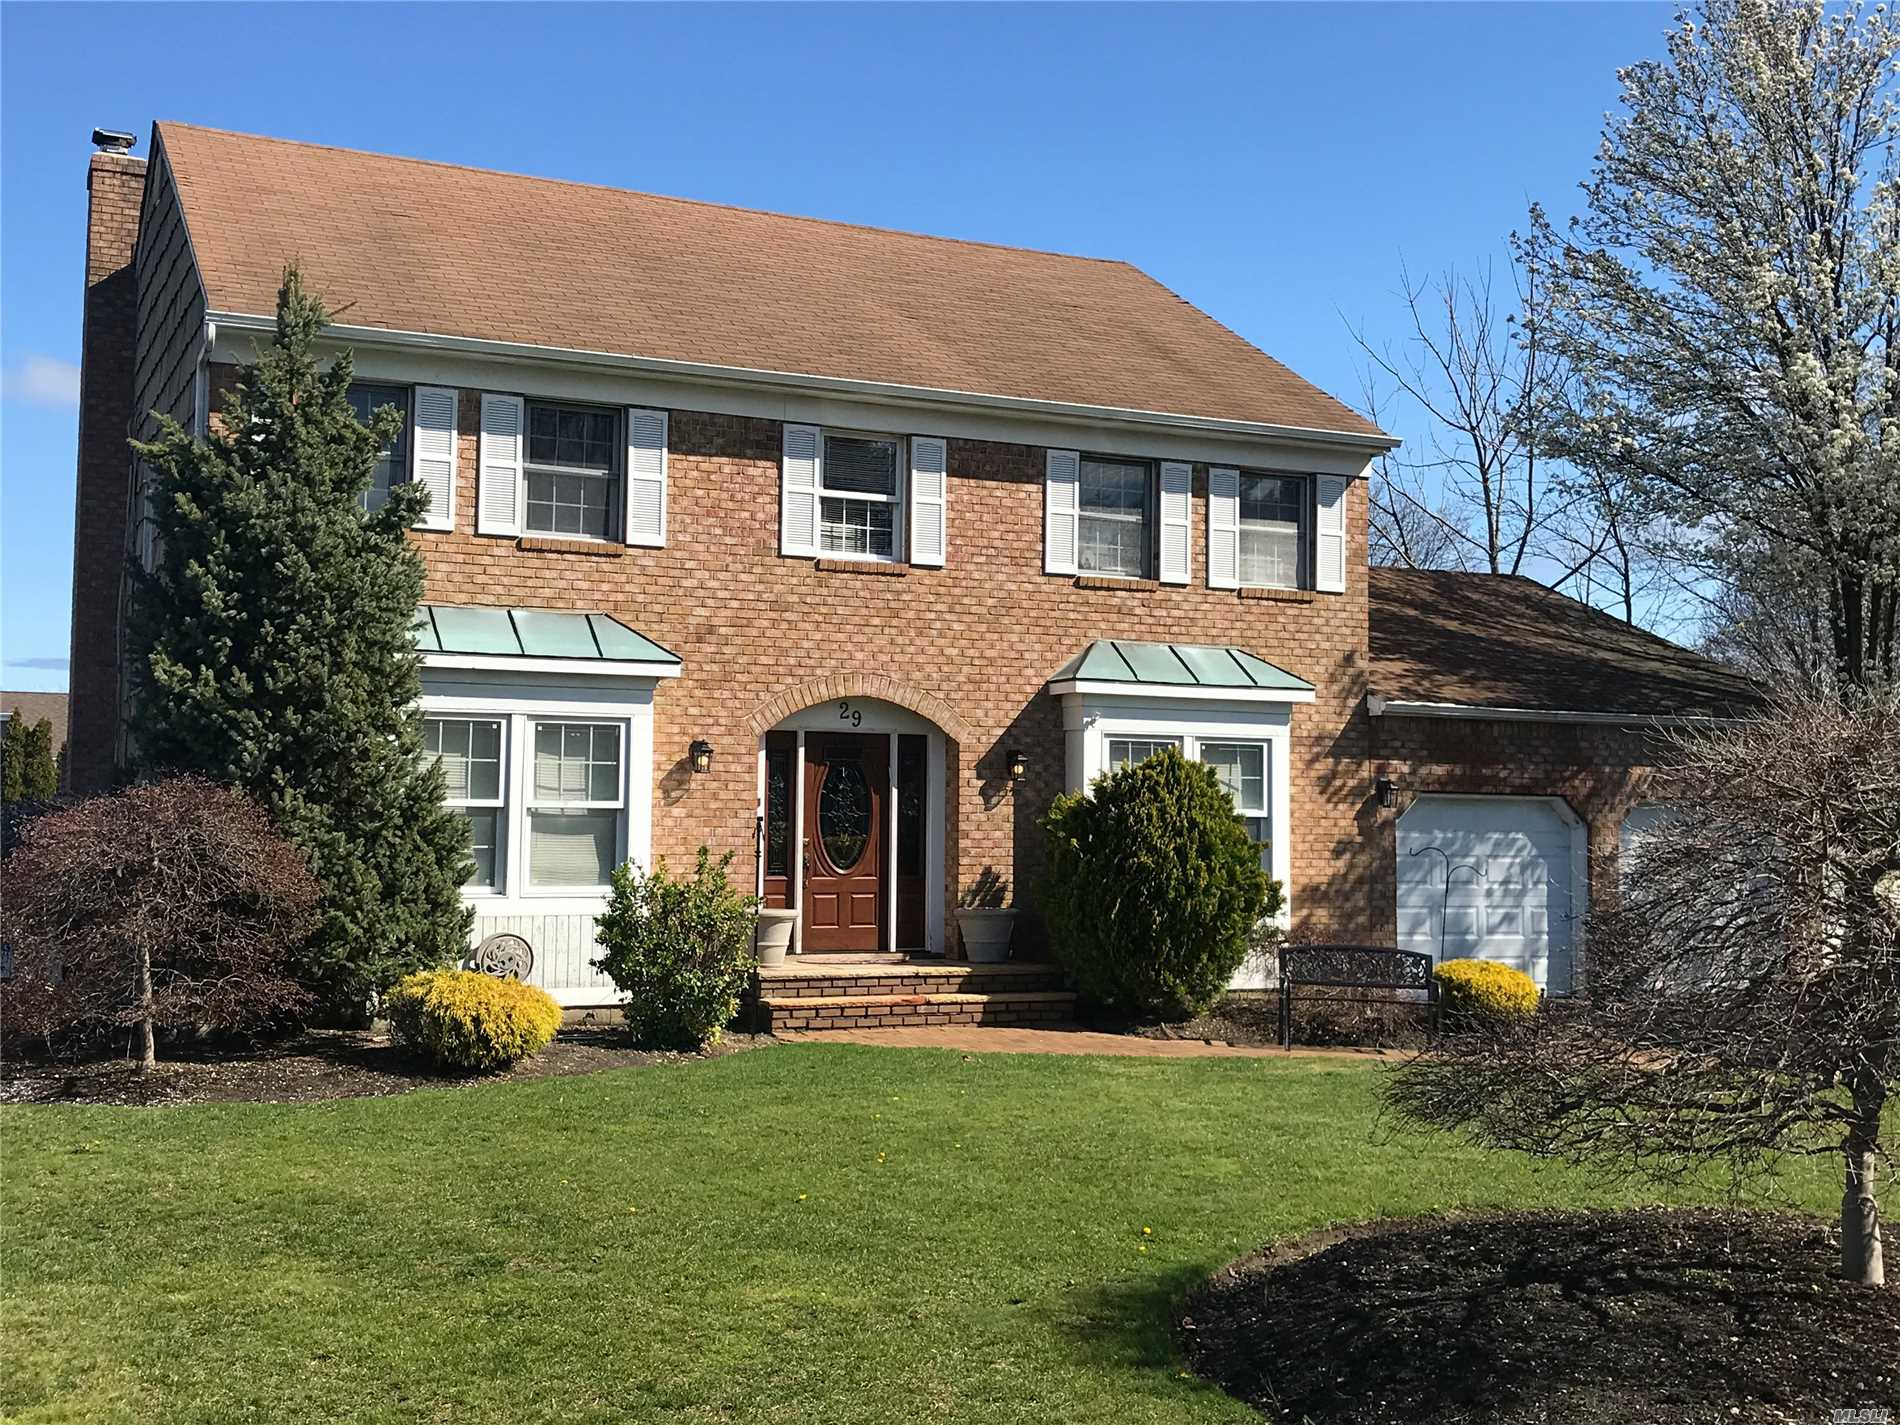 Rare Find-Has Very Large Full Basement In Sought After County Woods Builders Largest Brick Faced Estate Model. This Very Spacious Center Hall Colonial Is Set On A Mid Block Tree Lined Street. Features A Very Large Master Suite W/Full Large /Deluxe Size Master Bathroom Inc. Soaking Tub, Separate Shower, Dual Sinks And Large His & Her Closets & Large Bedrooms. In-Ground Pool, Fenced Usable Private Property And More. Priced To Sell!